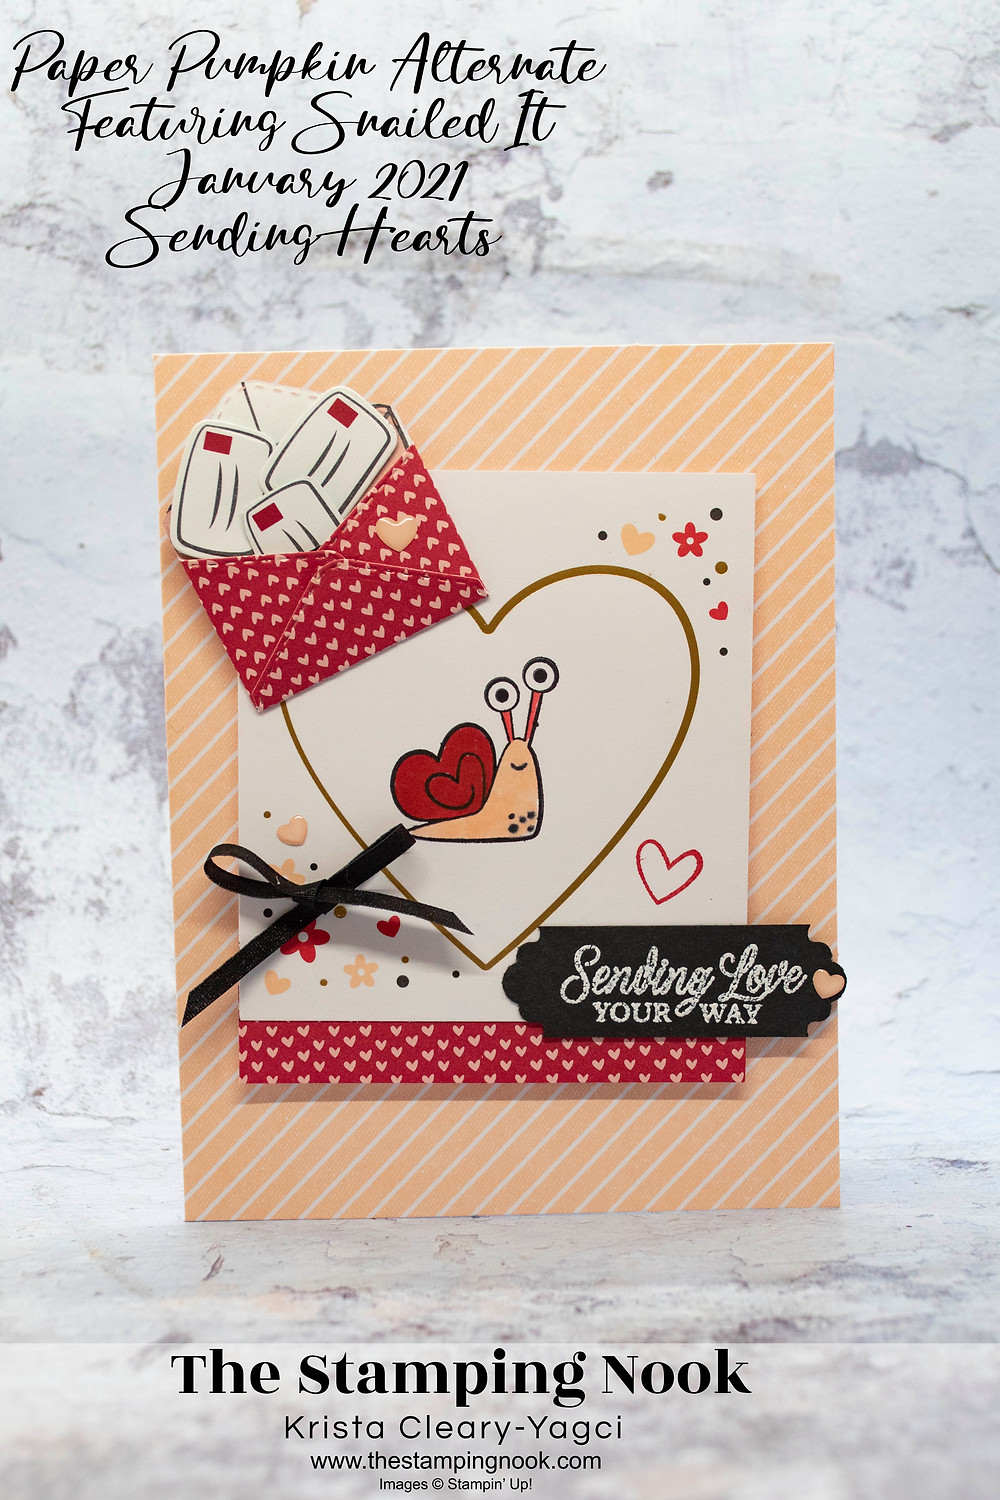 Stampin' Up! Paper Pumpkin January 2021 Sending Hearts Cards - Paper Pumpkin Alternate - The Stamping Nook Krista Cleary-Yagci